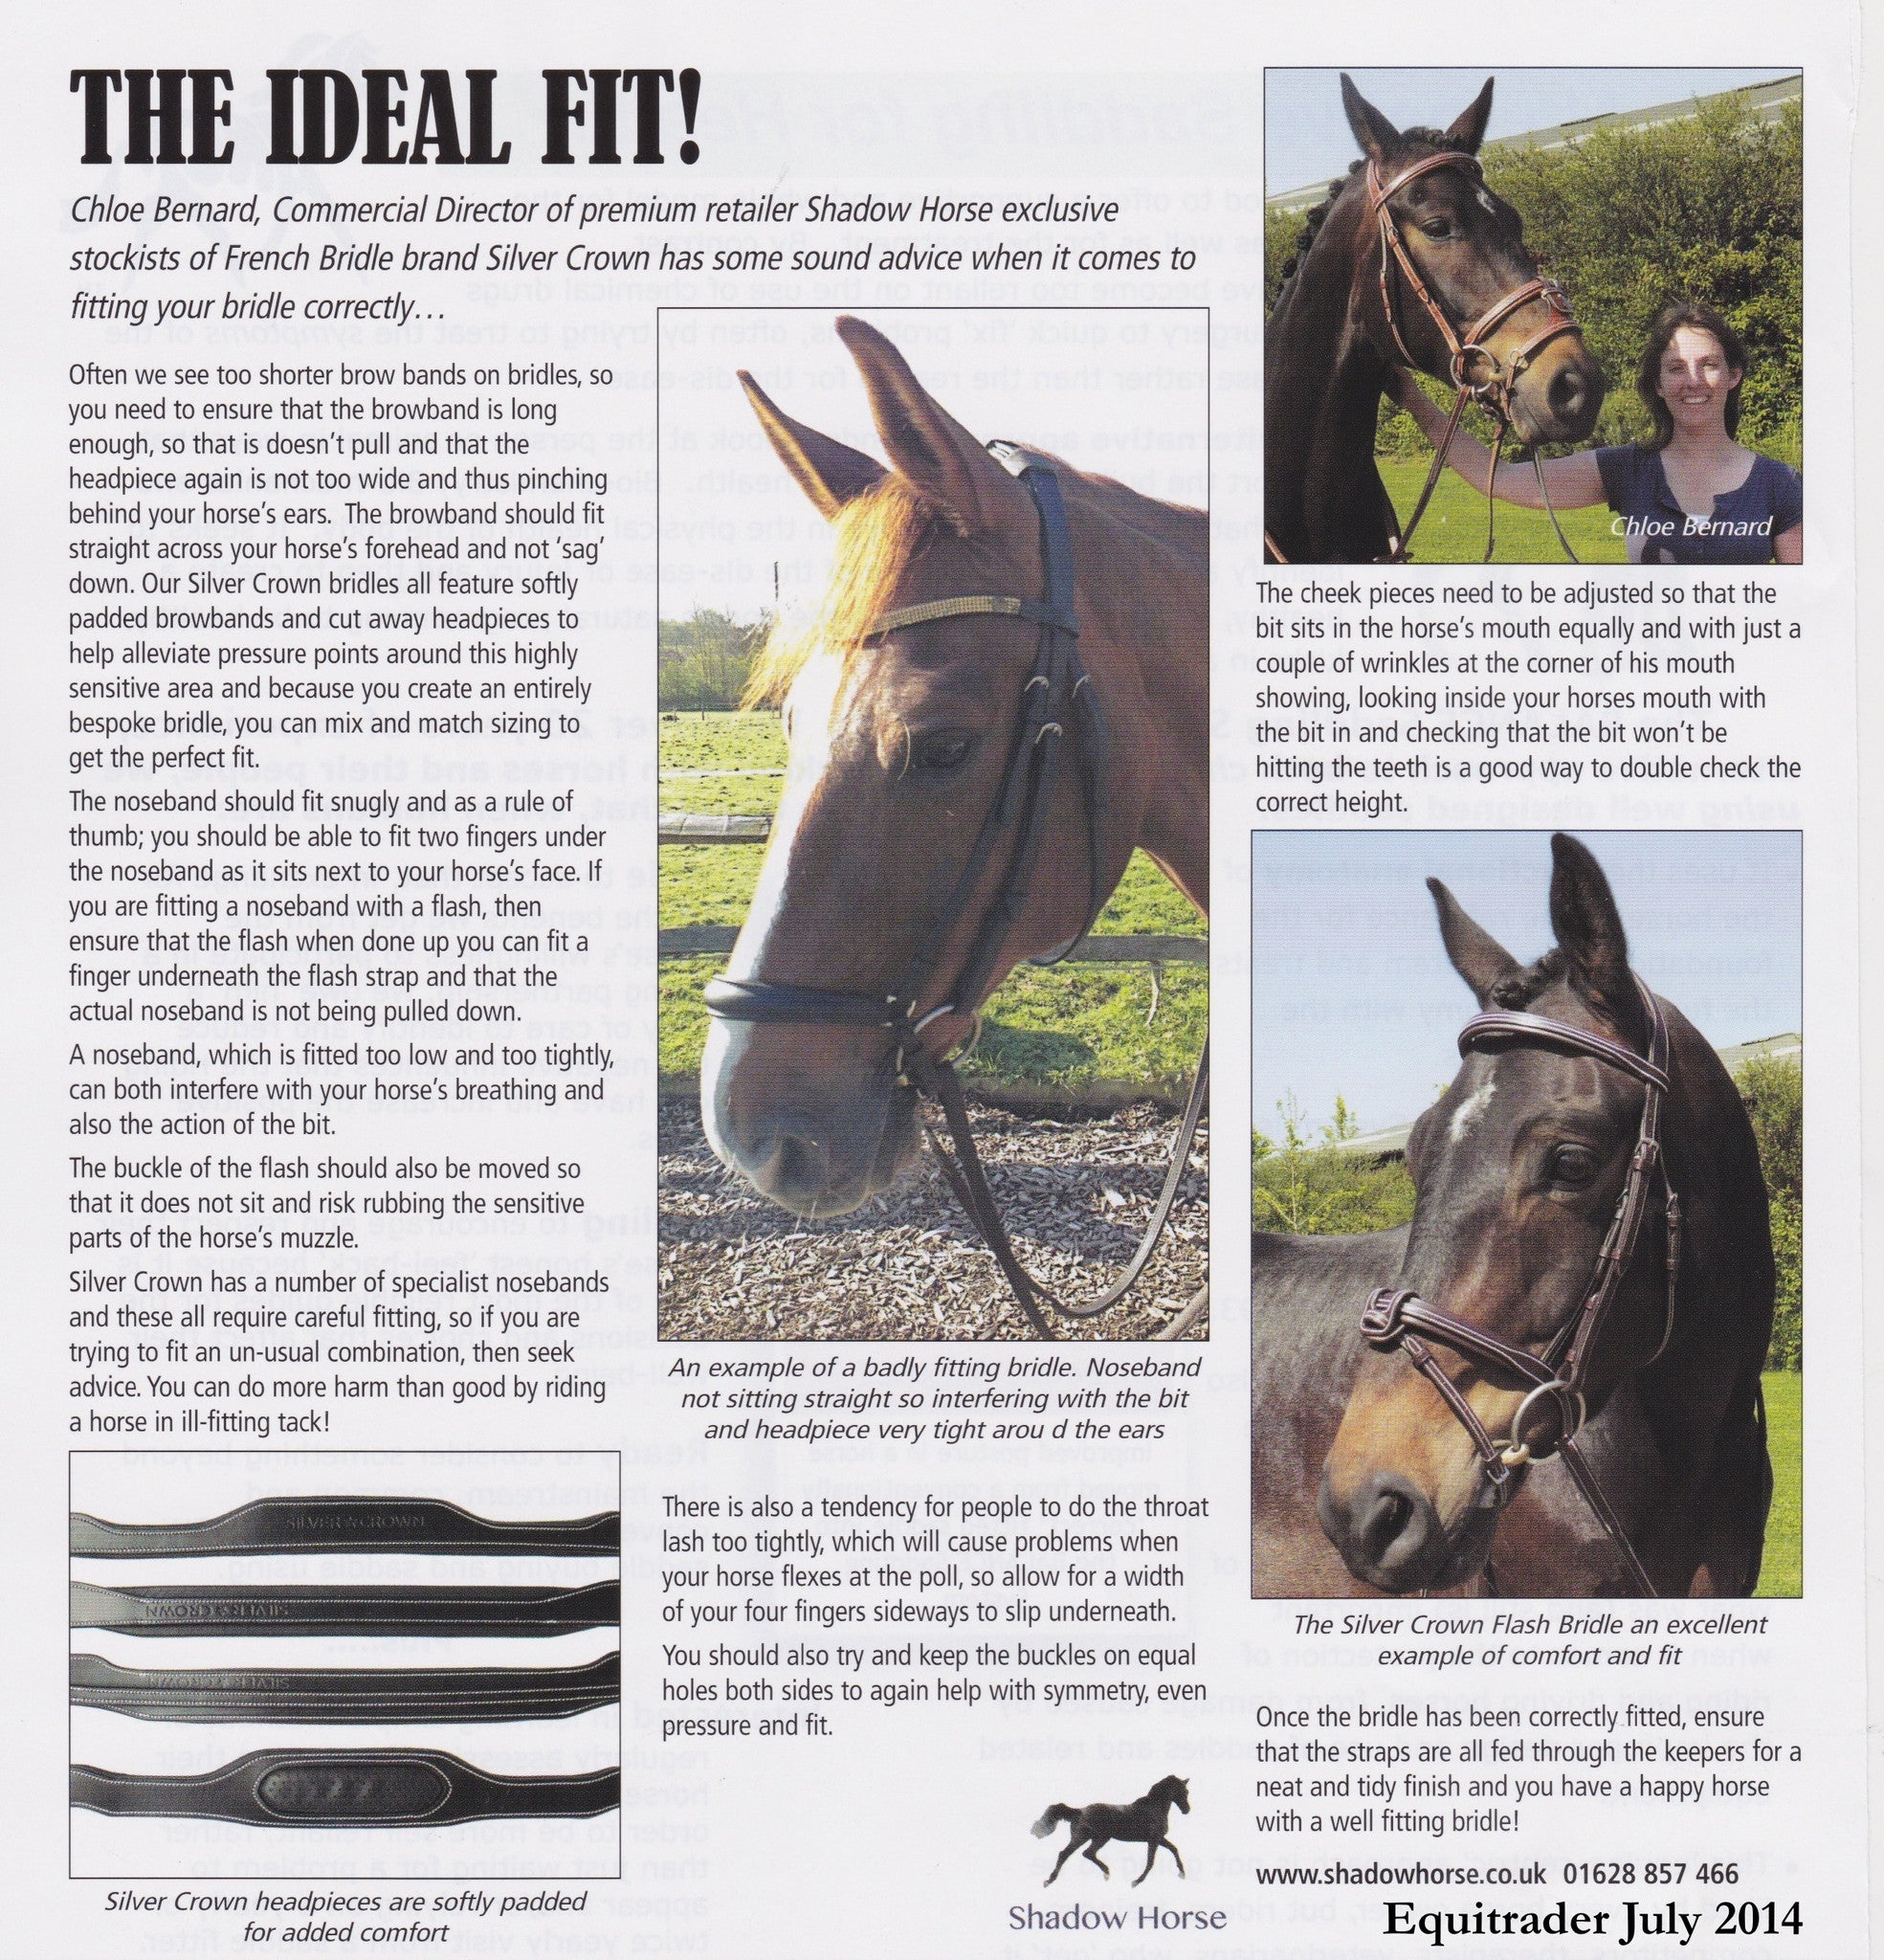 Chloe on achieving the ideal fit for your bridle